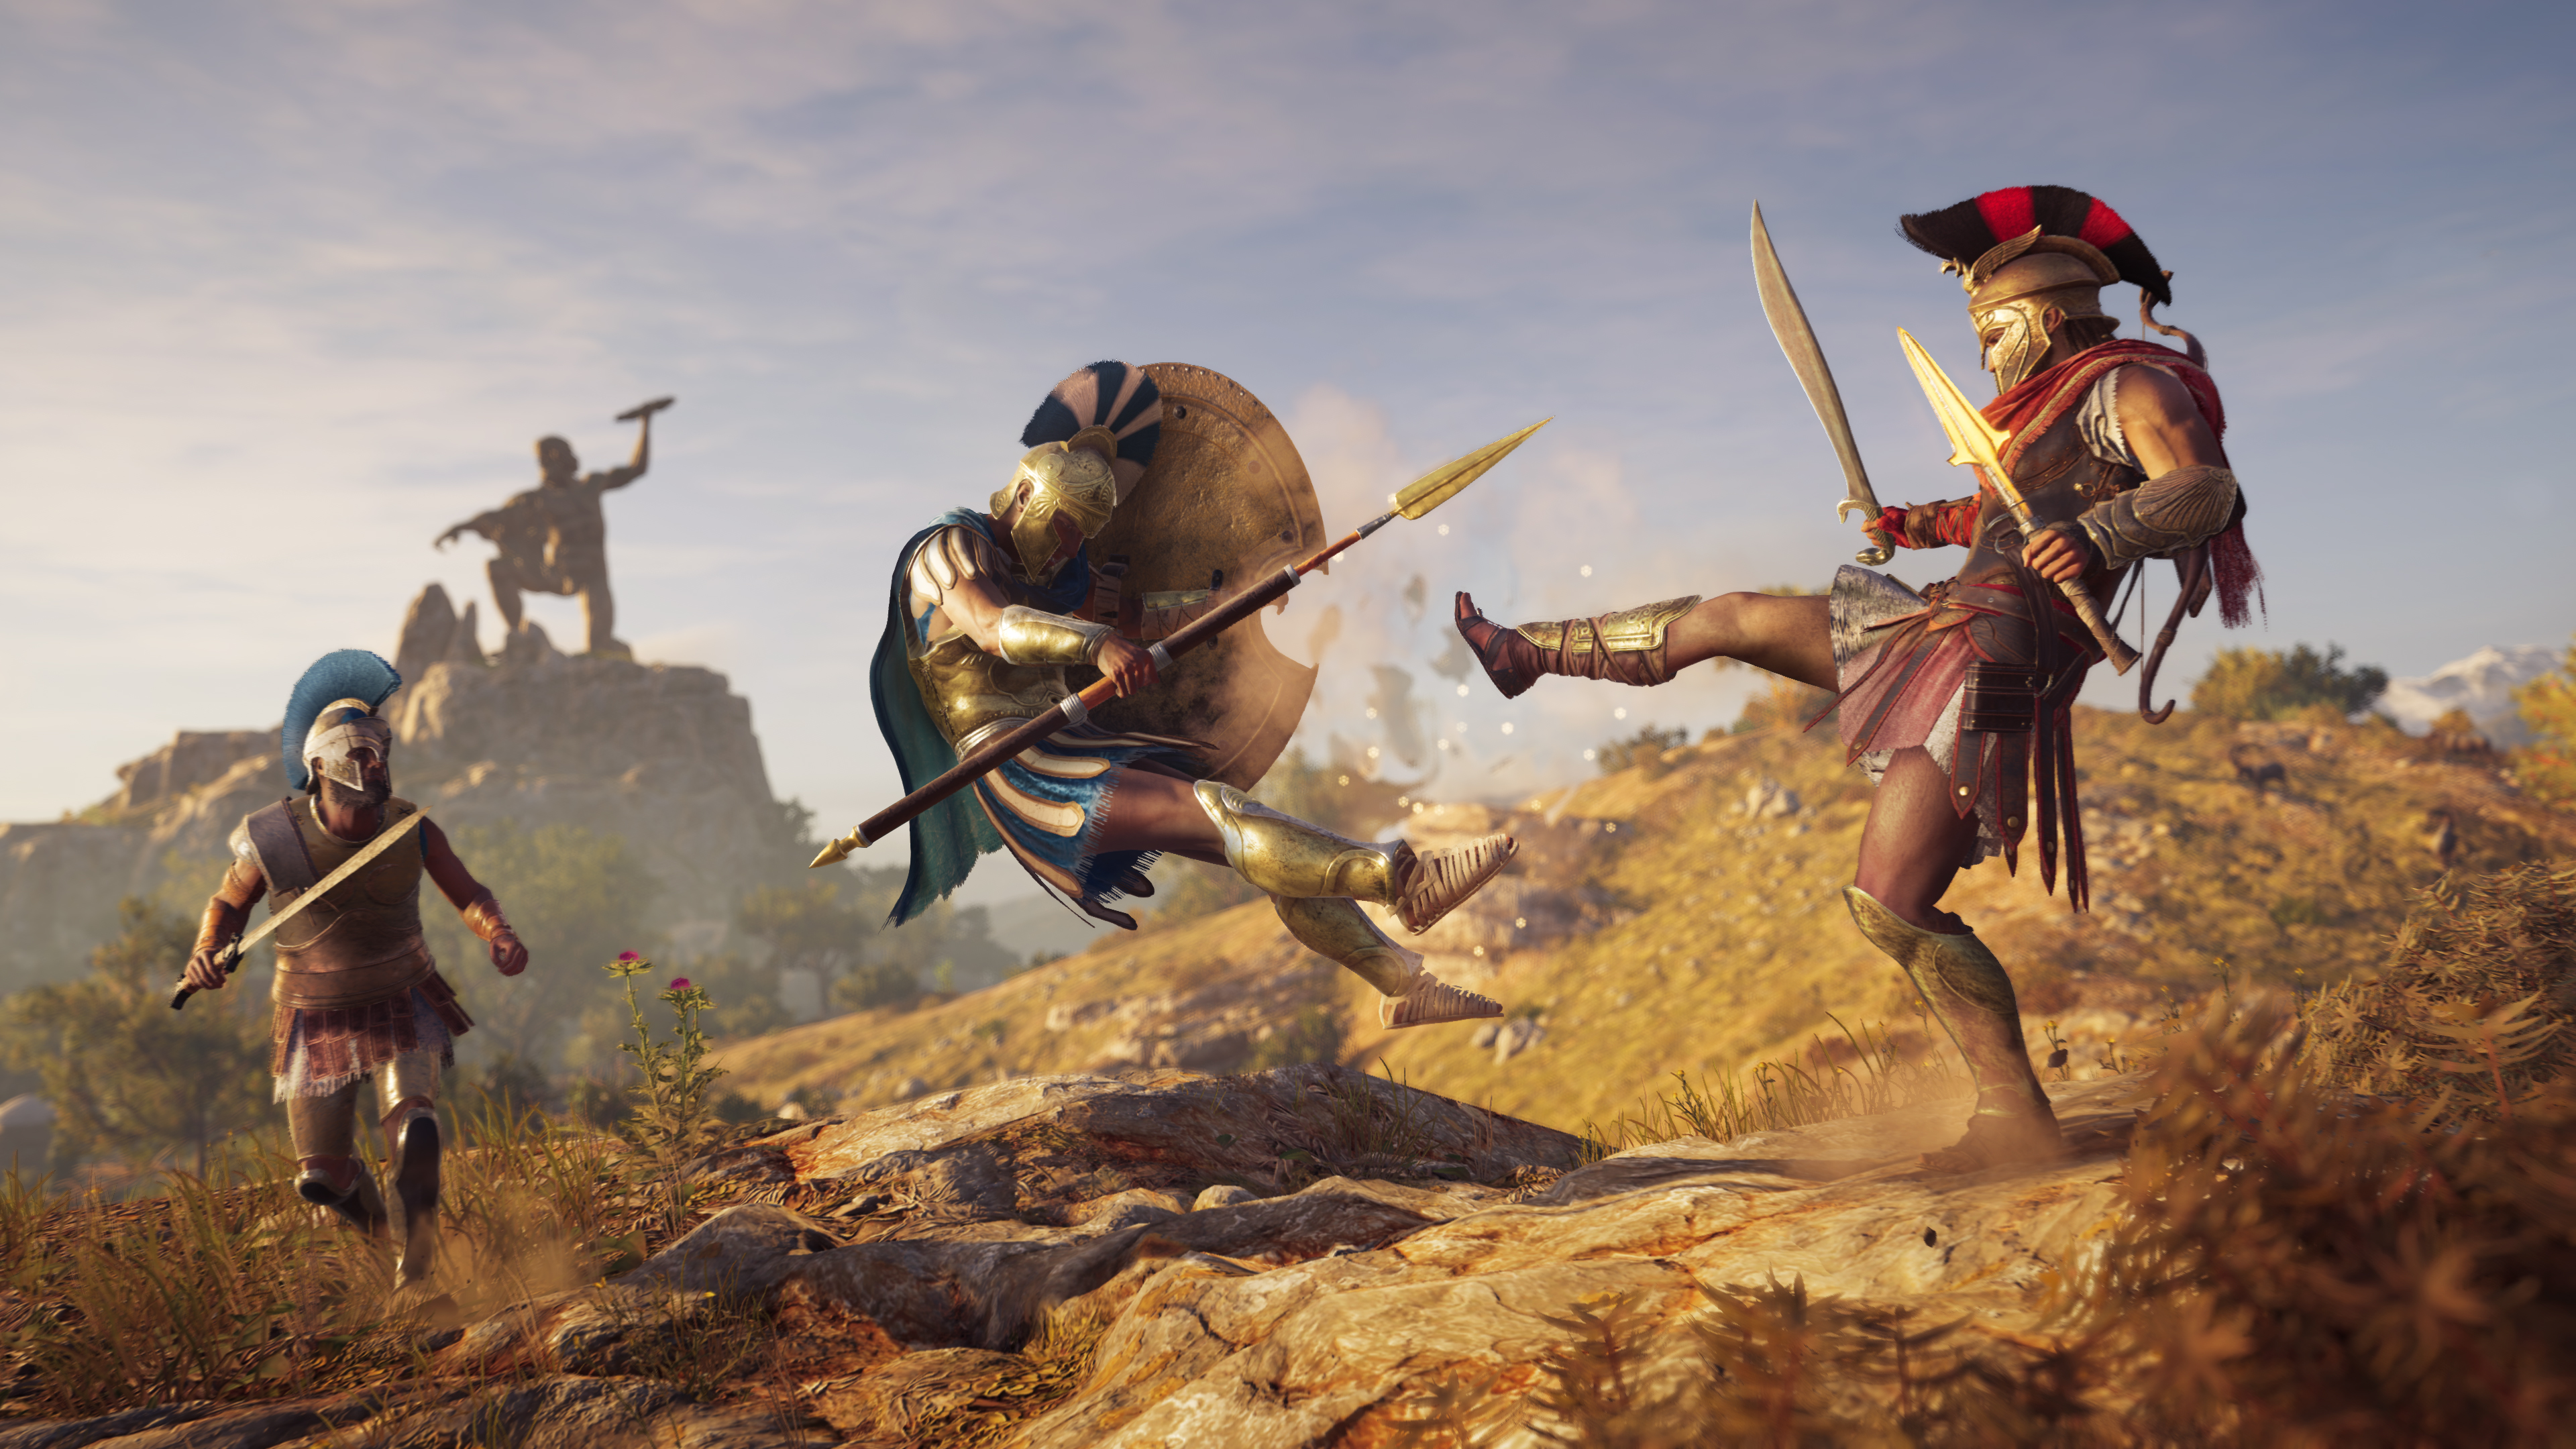 Assassin s Creed Odyssey is even more of a traditional RPG than